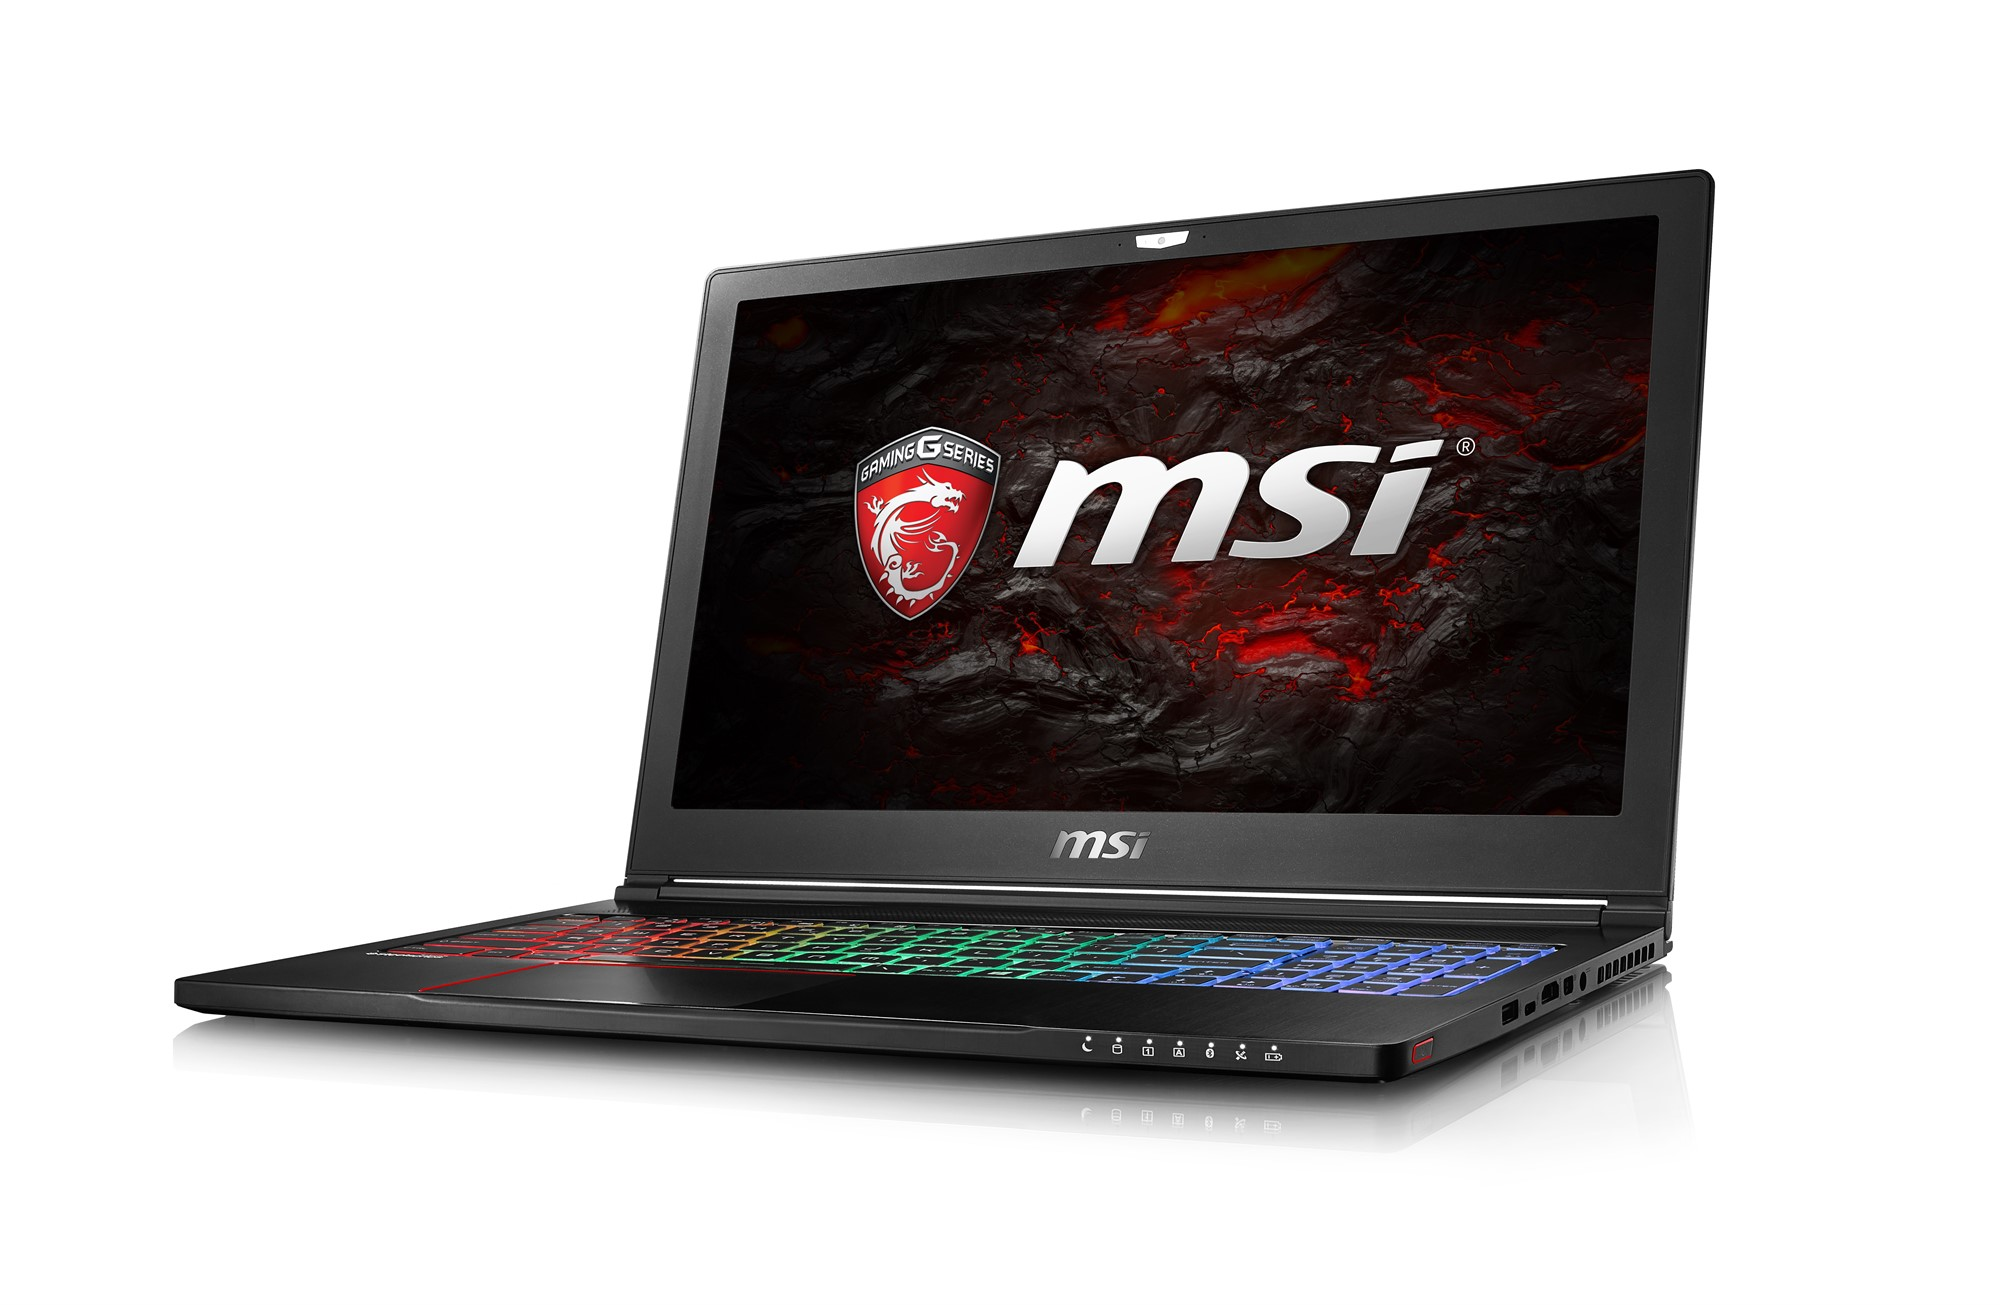 MSI GAMING GS63 7RD-091UK STEALTH 2.8GHZ I7-7700HQ 15.6